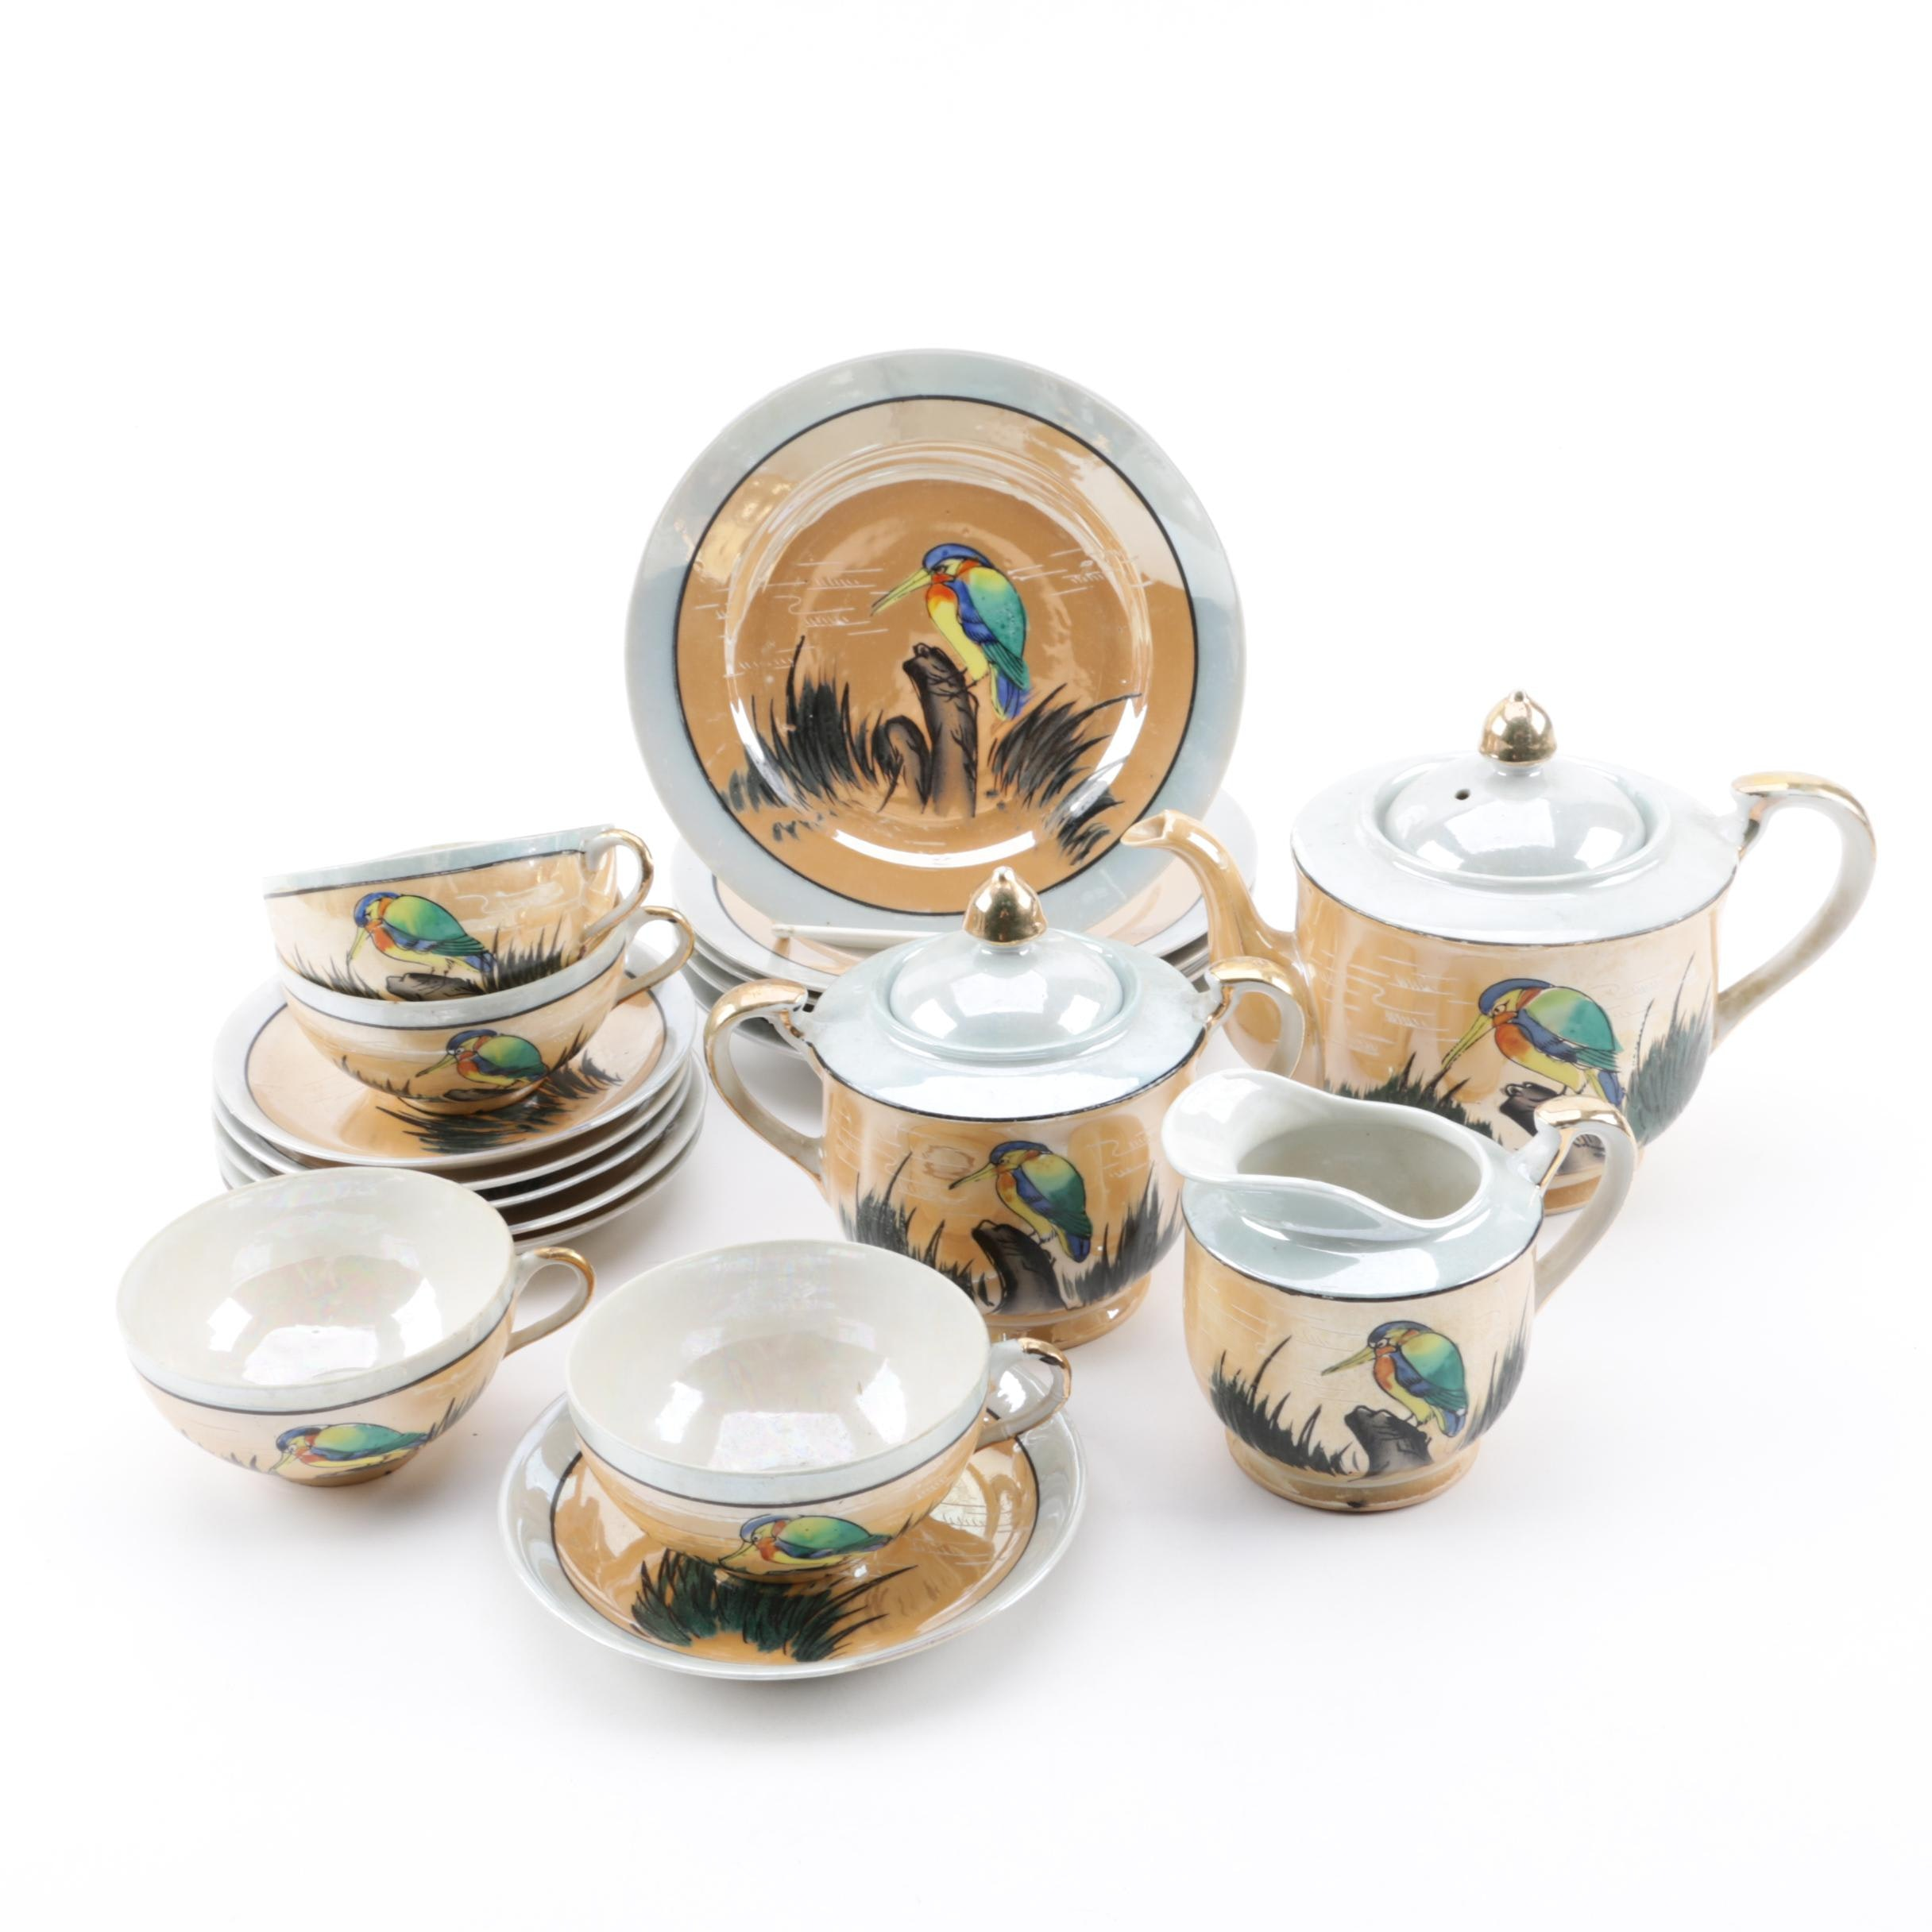 Vintage Japanese Luster Tea Set with Bird Motif